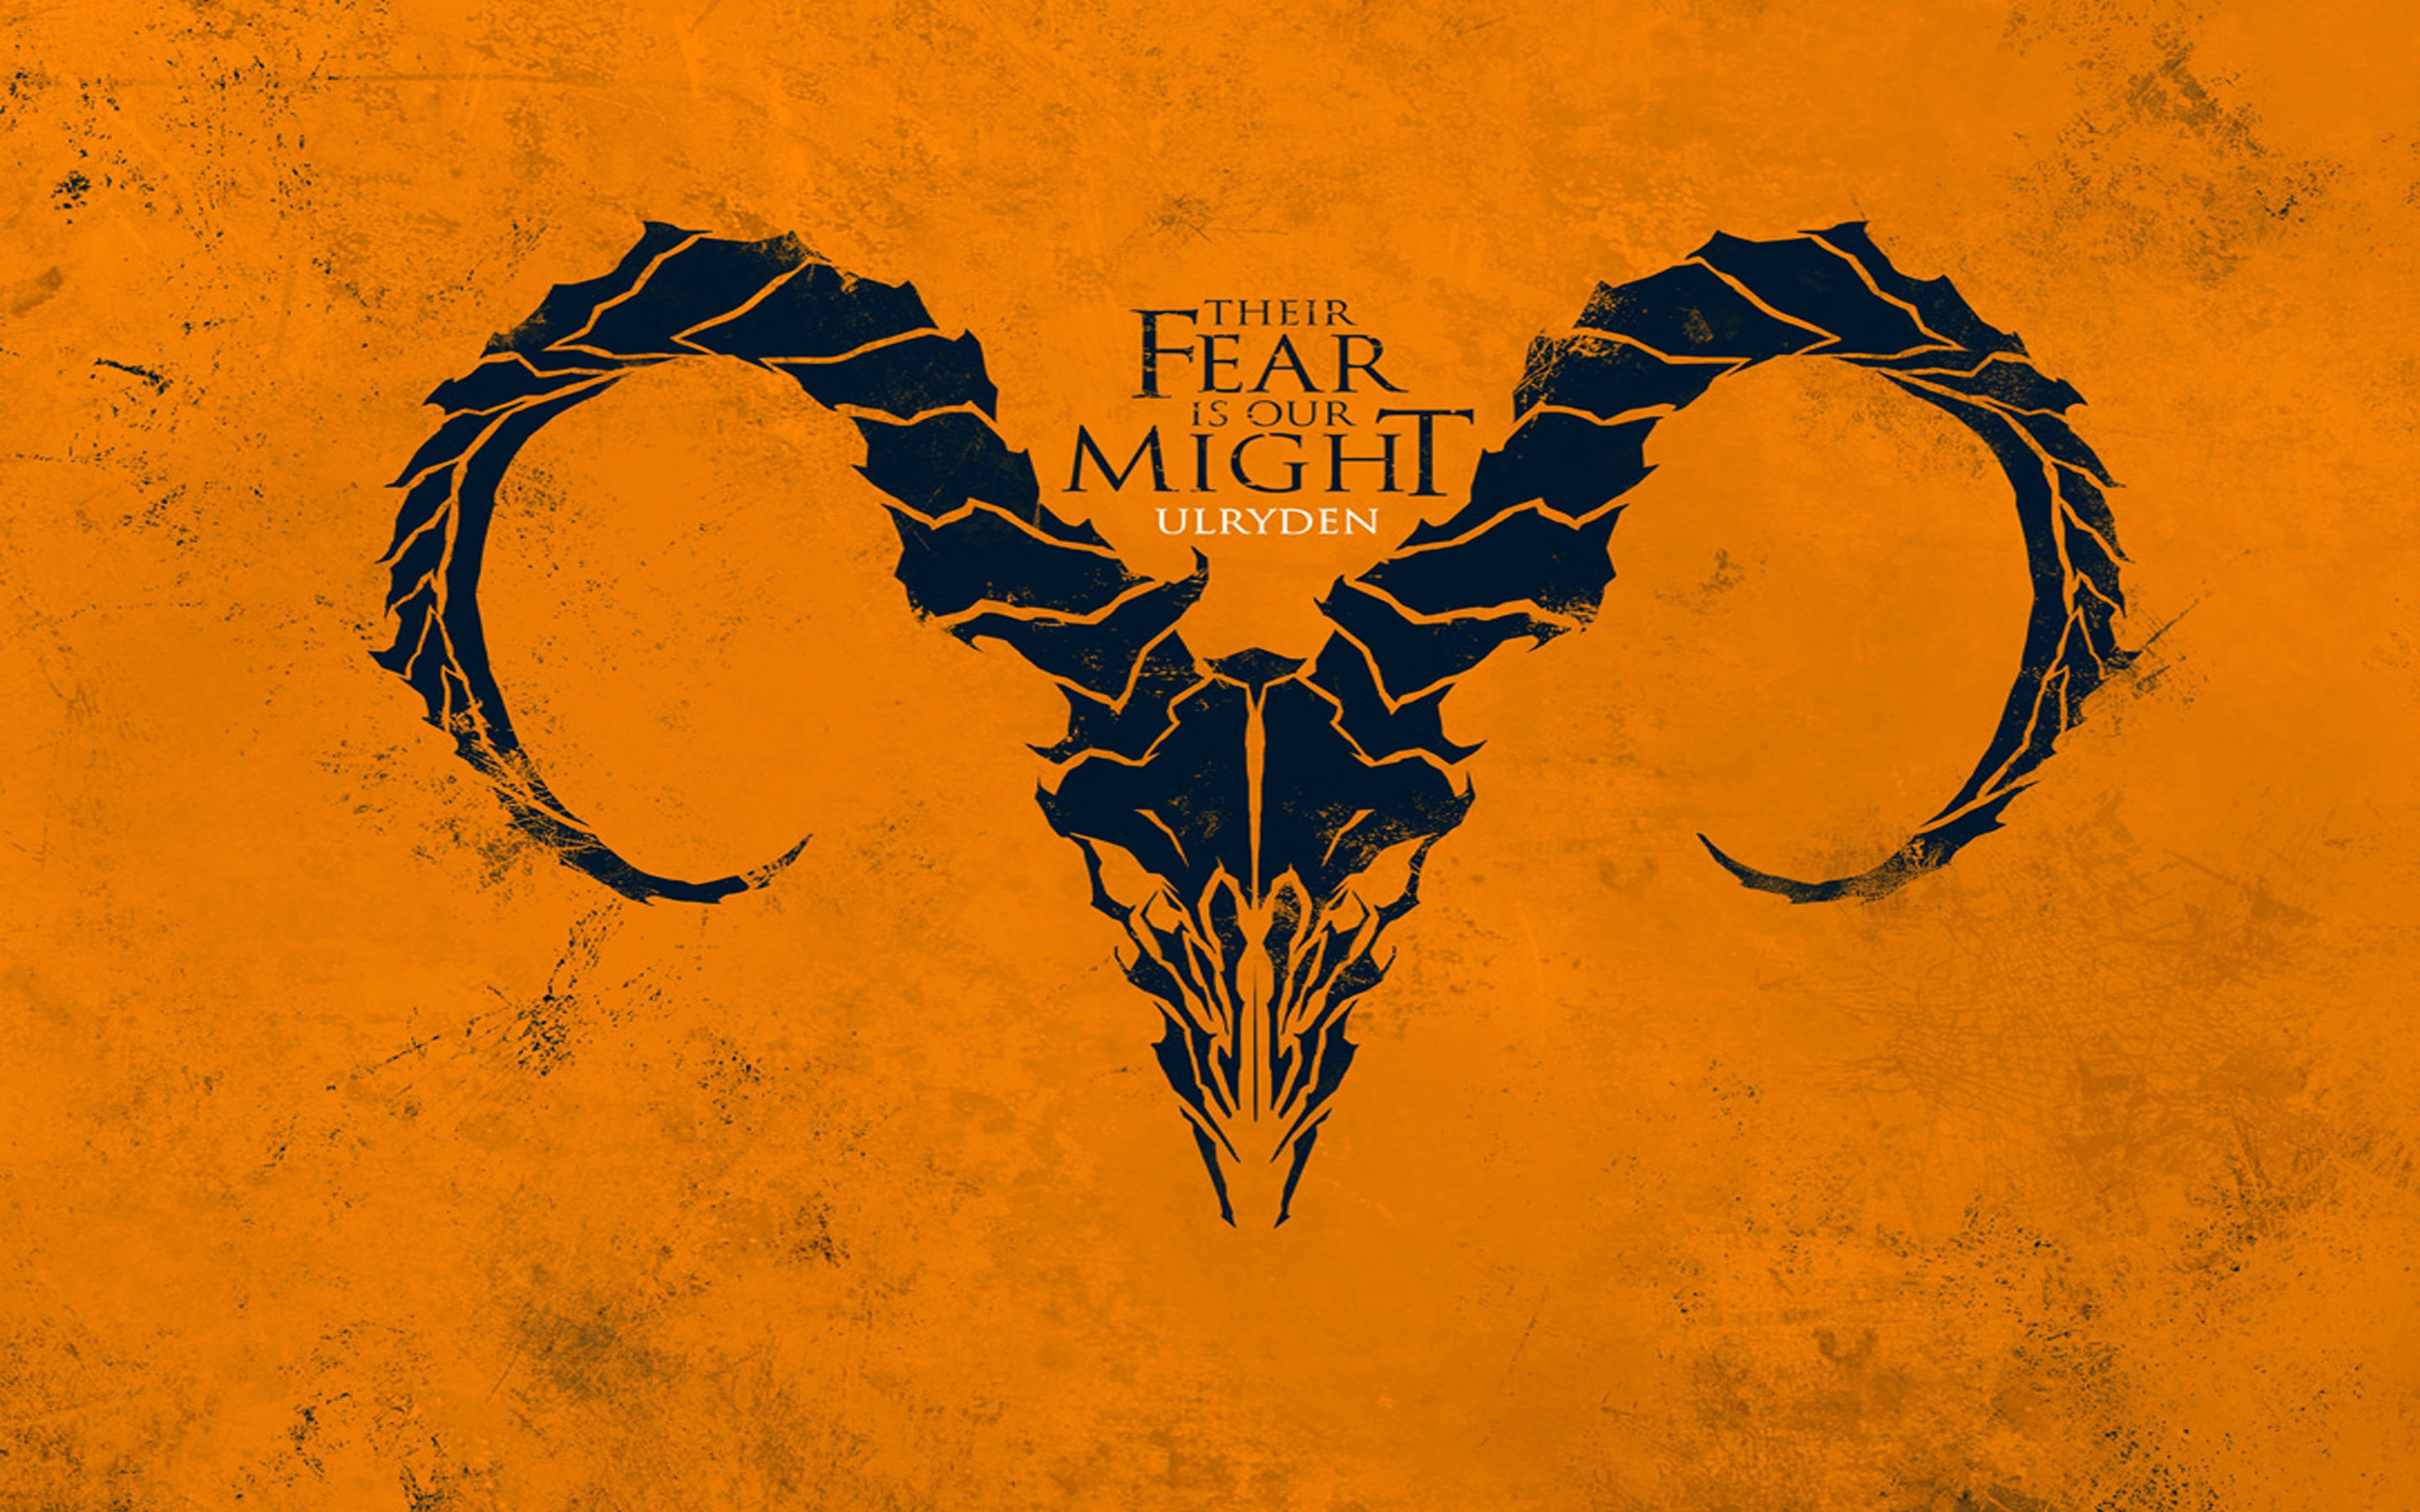 Game Of Thrones Wallpaper Hd Android Desktop High Resolution PIC